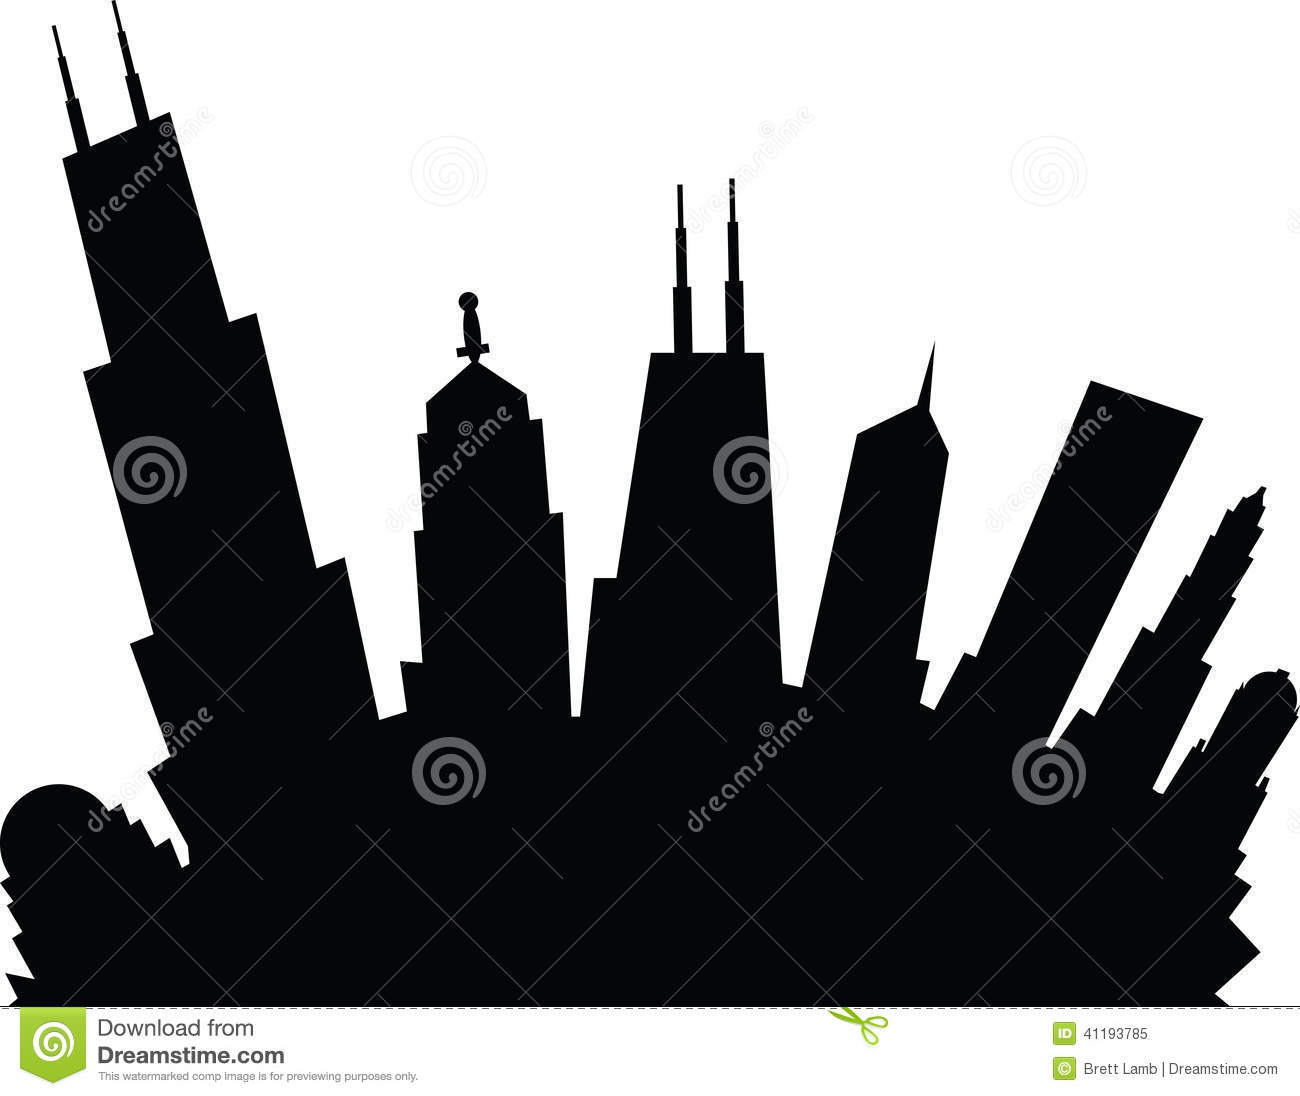 Chicago clipart #7, Download drawings